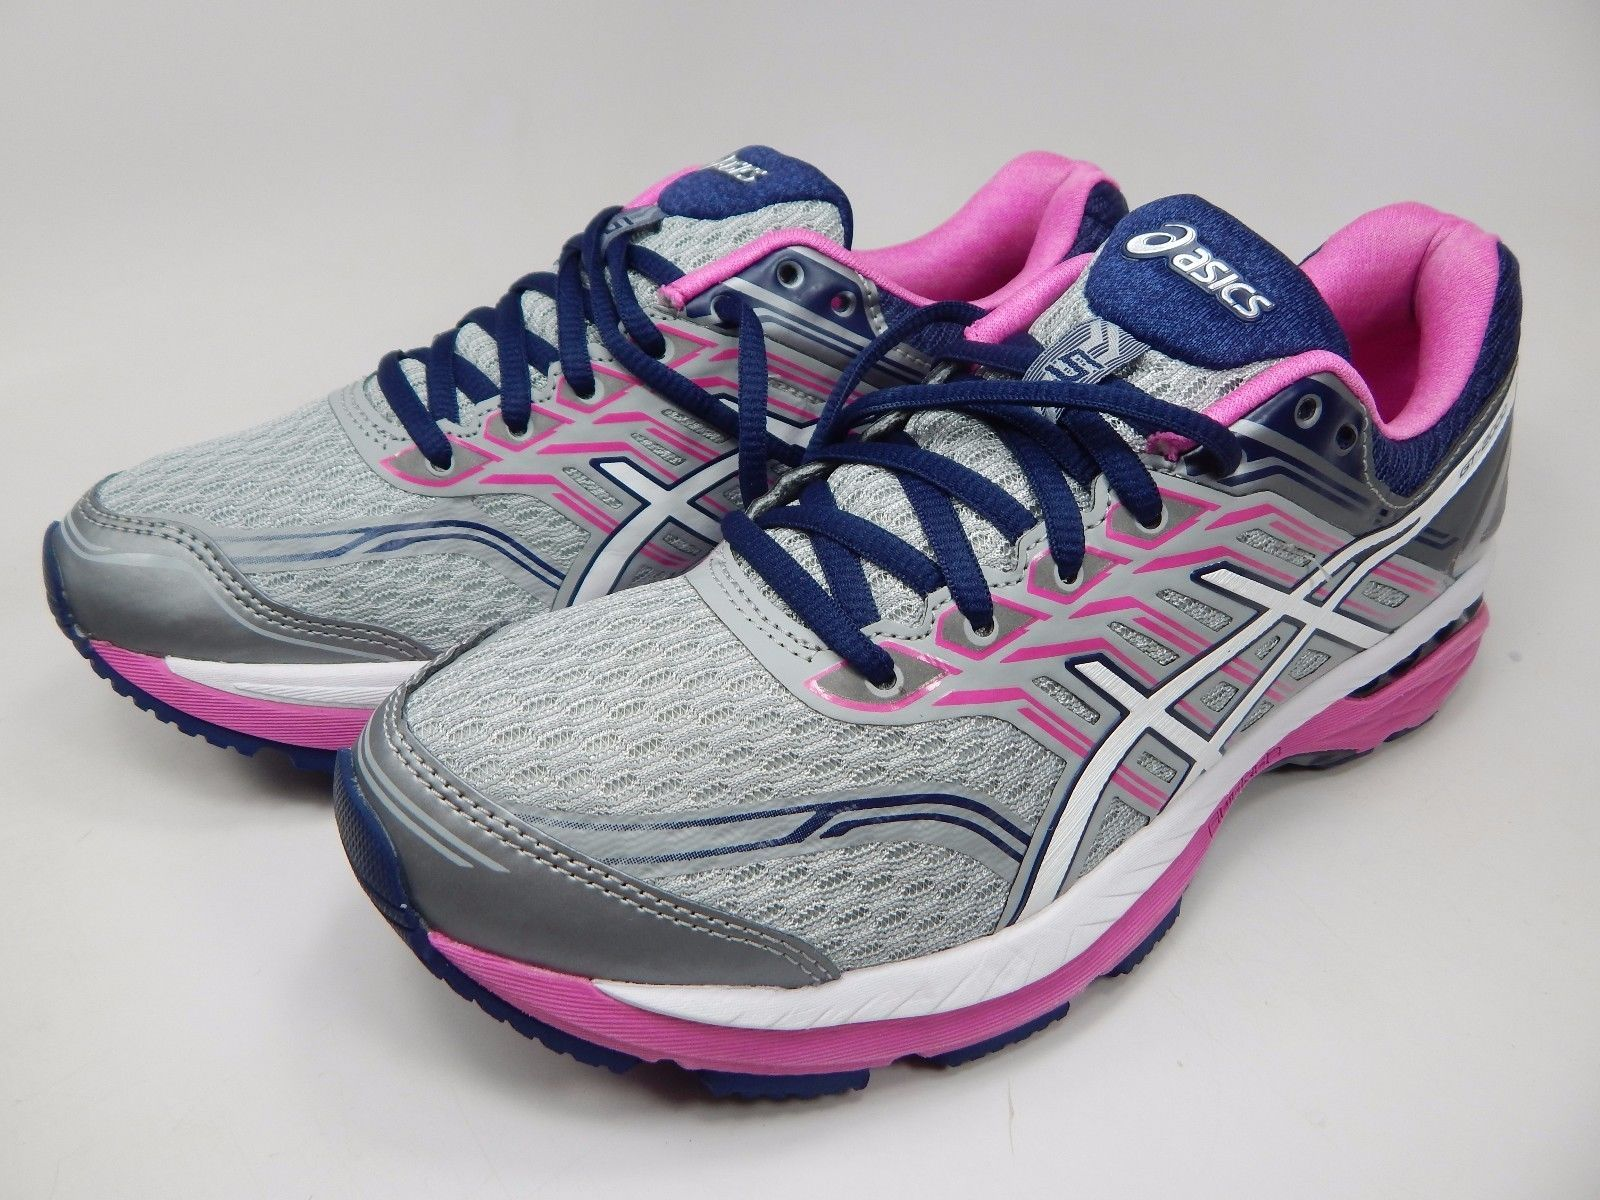 Asics GT 2000 v 5 Women's Running Shoes Sz US 8 M (B) EU 39.5 Silver Pink T757N